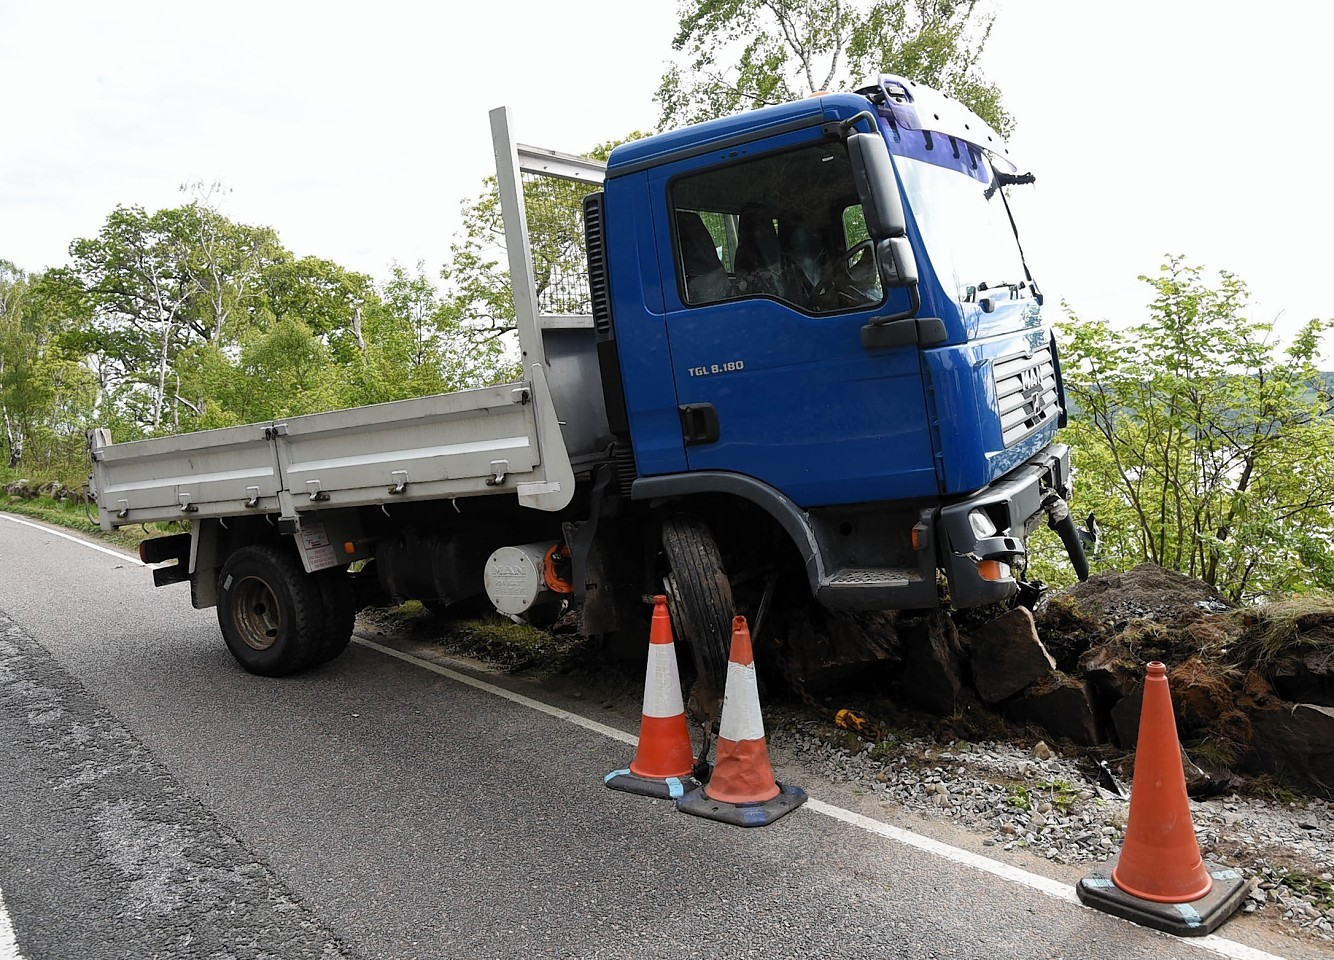 The lorry off the road approx half a mile north of the Clansman Hotel on the A82 Inverness to Drumnadrochit road.